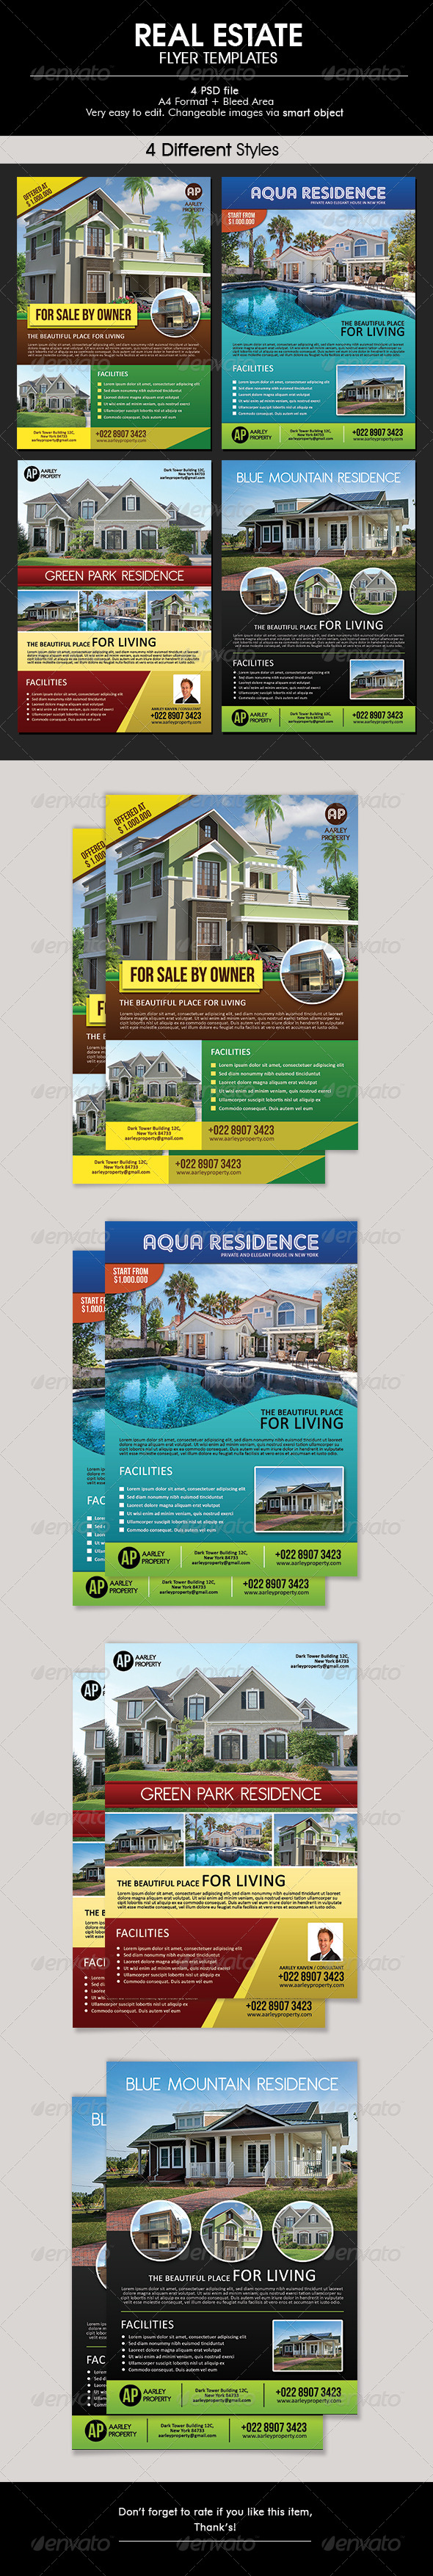 GraphicRiver Real Estate Flyer 6395908